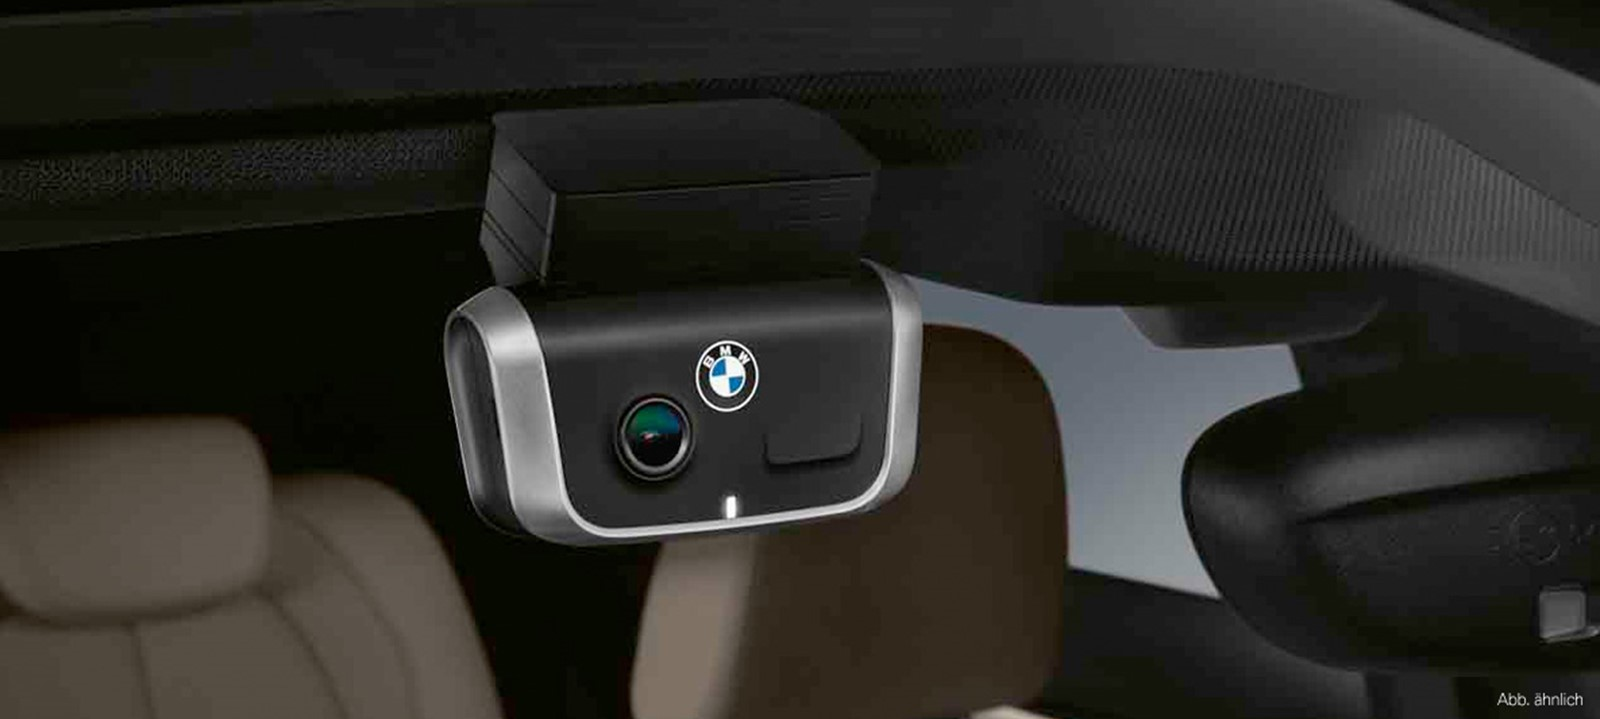 Keep A Close Eye With The New Bmw Advanced Car Eye 2 0